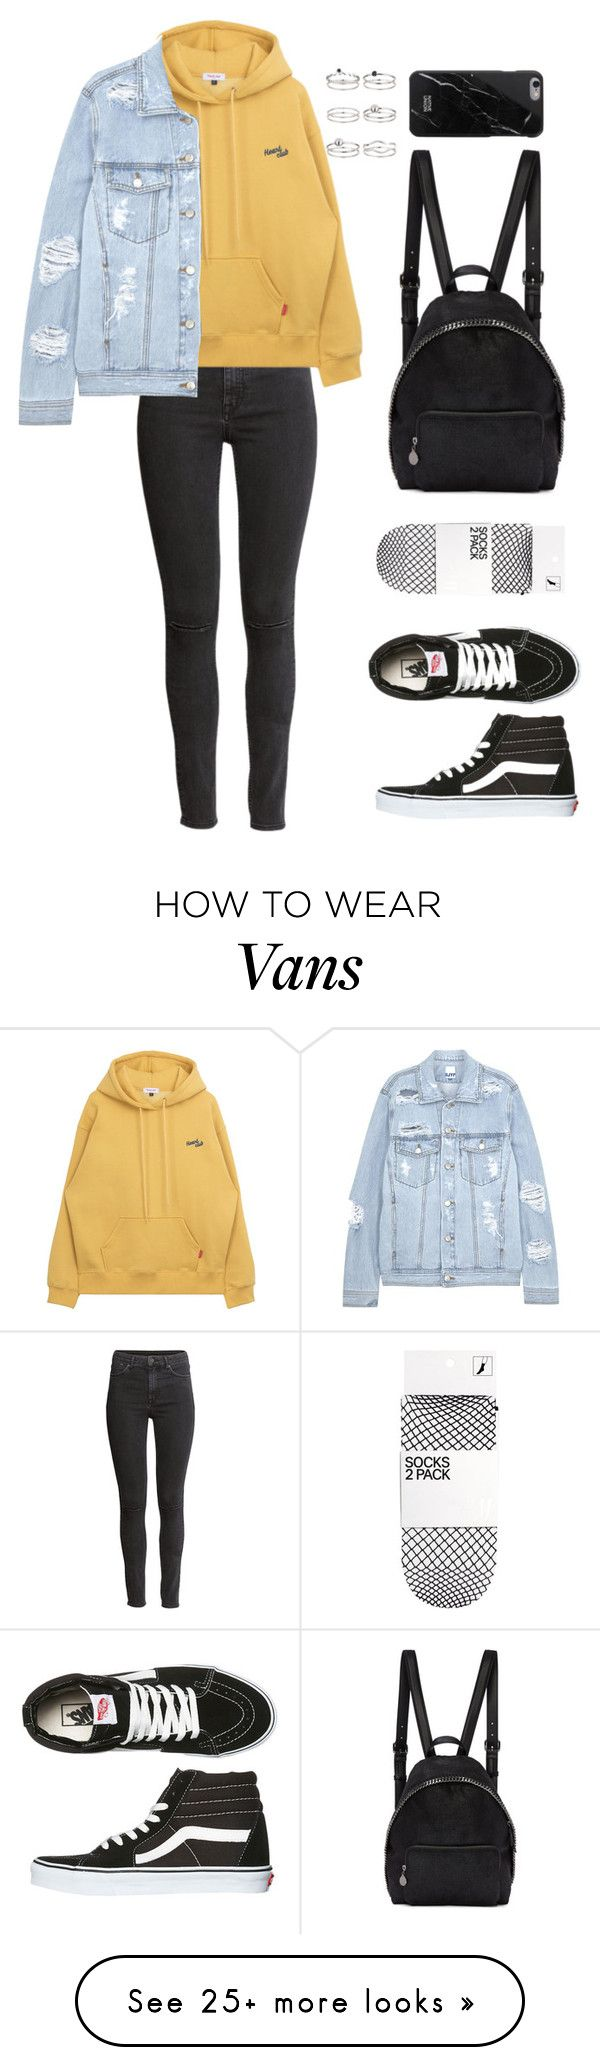 """Untitled #141"" by manerefortis on Polyvore featuring H&M, SJYP, Vans, STELLA McCARTNEY, Native Union and Miss Selfridge(Fitness Inspiration Clothes)"